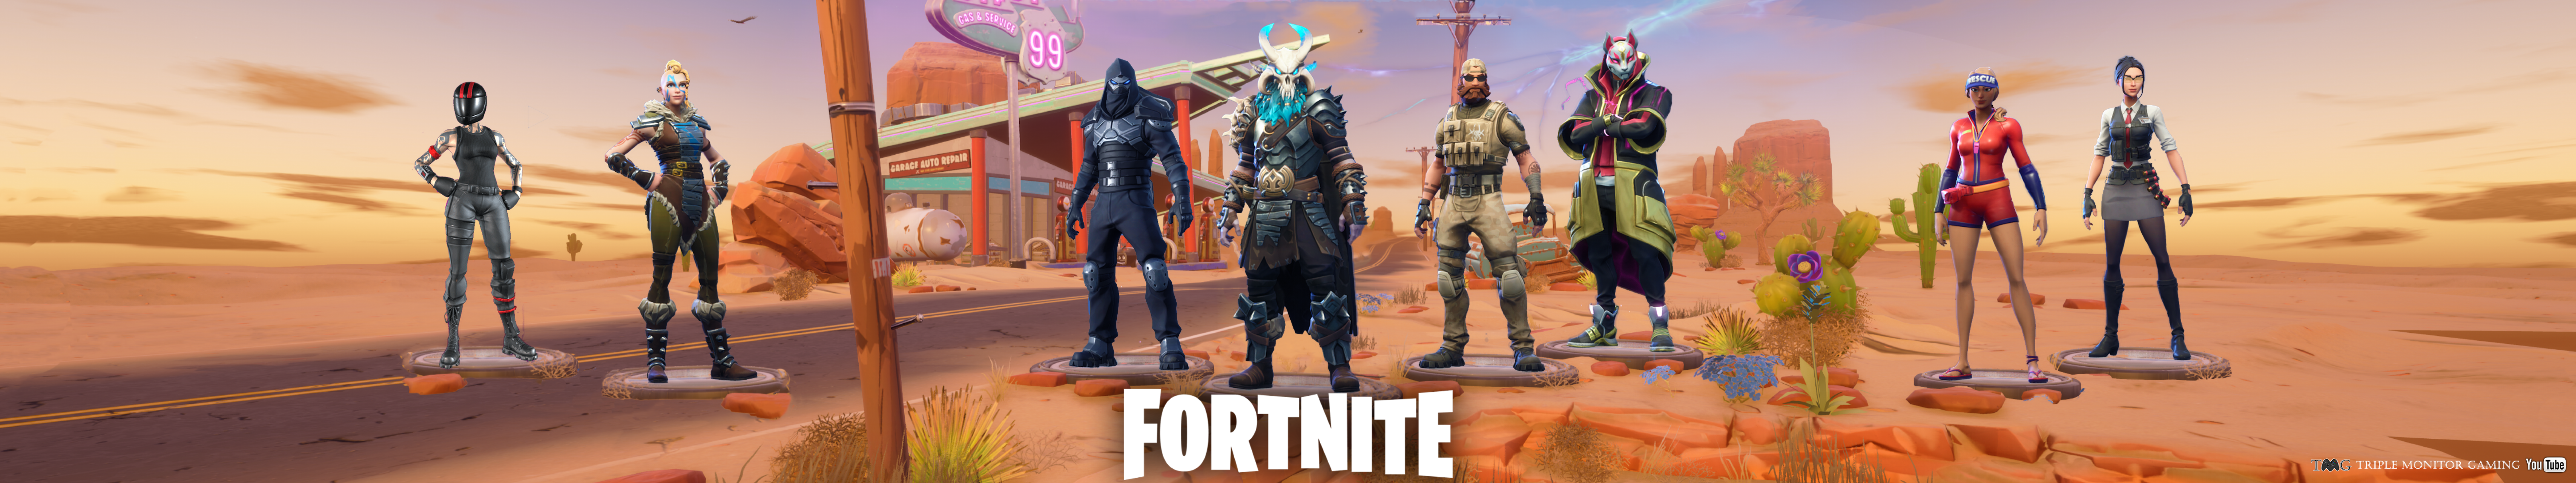 FORTNITE season 5 with logo